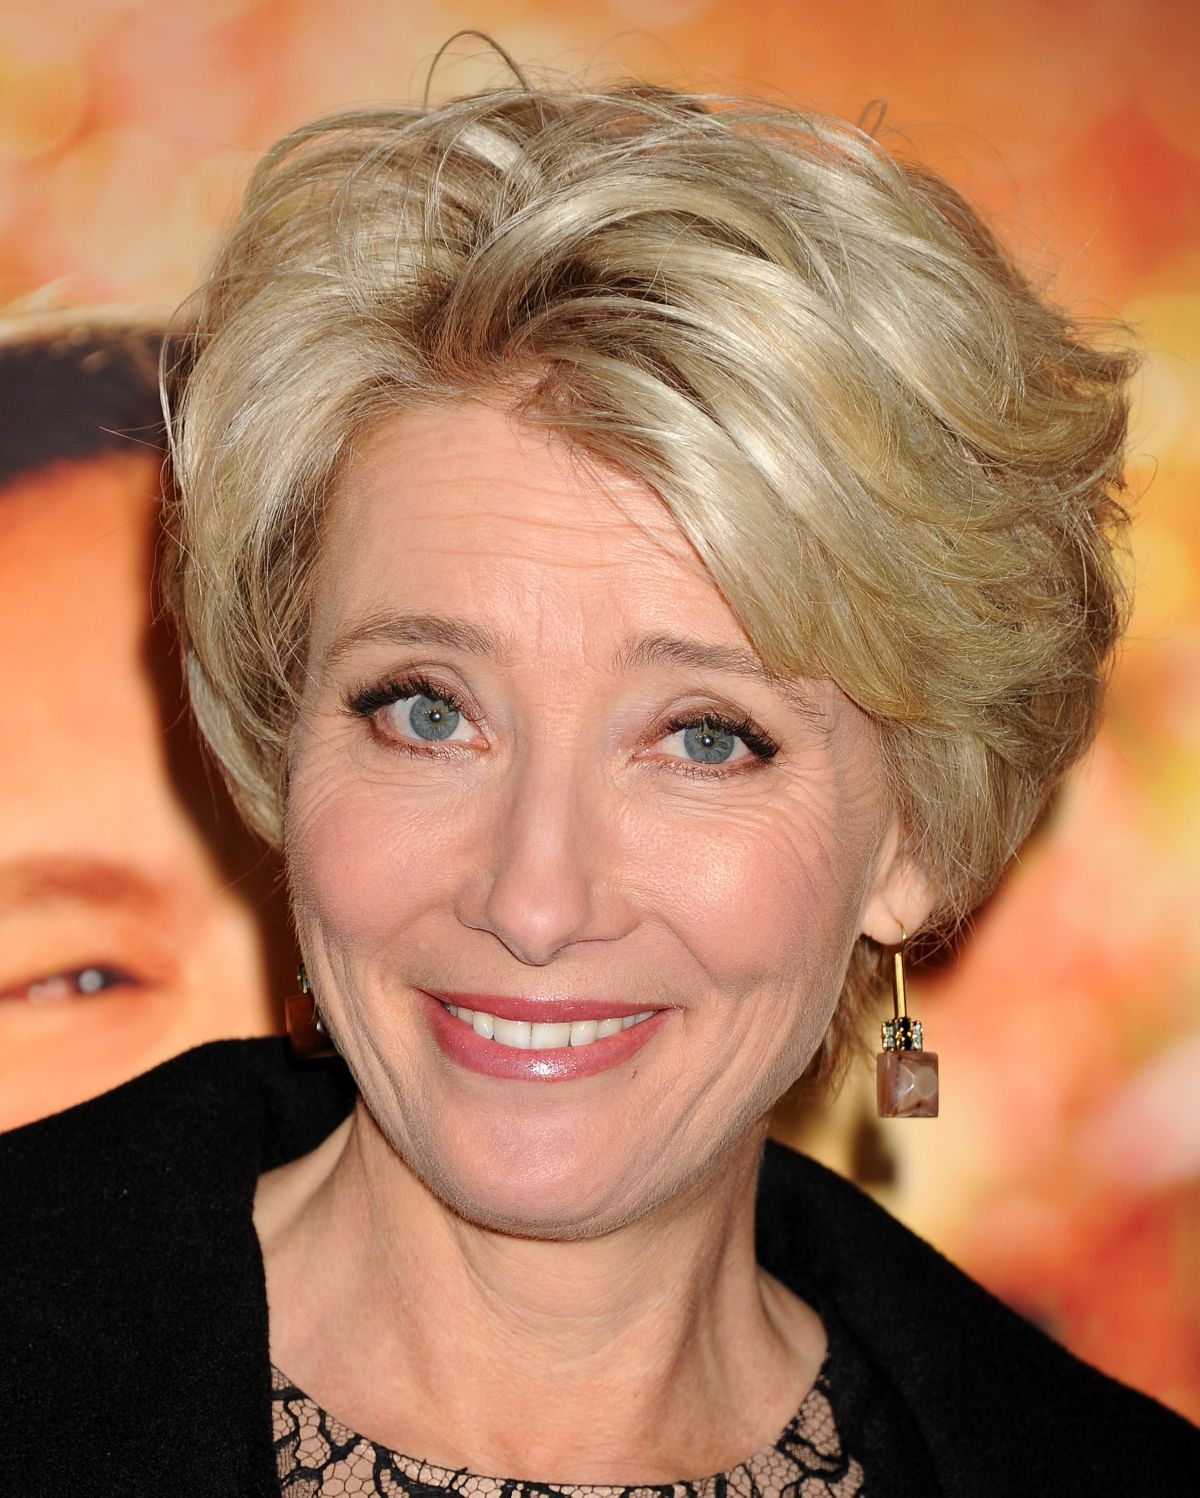 pin by lib harriss on hair in 2019 | emma thompson, curly